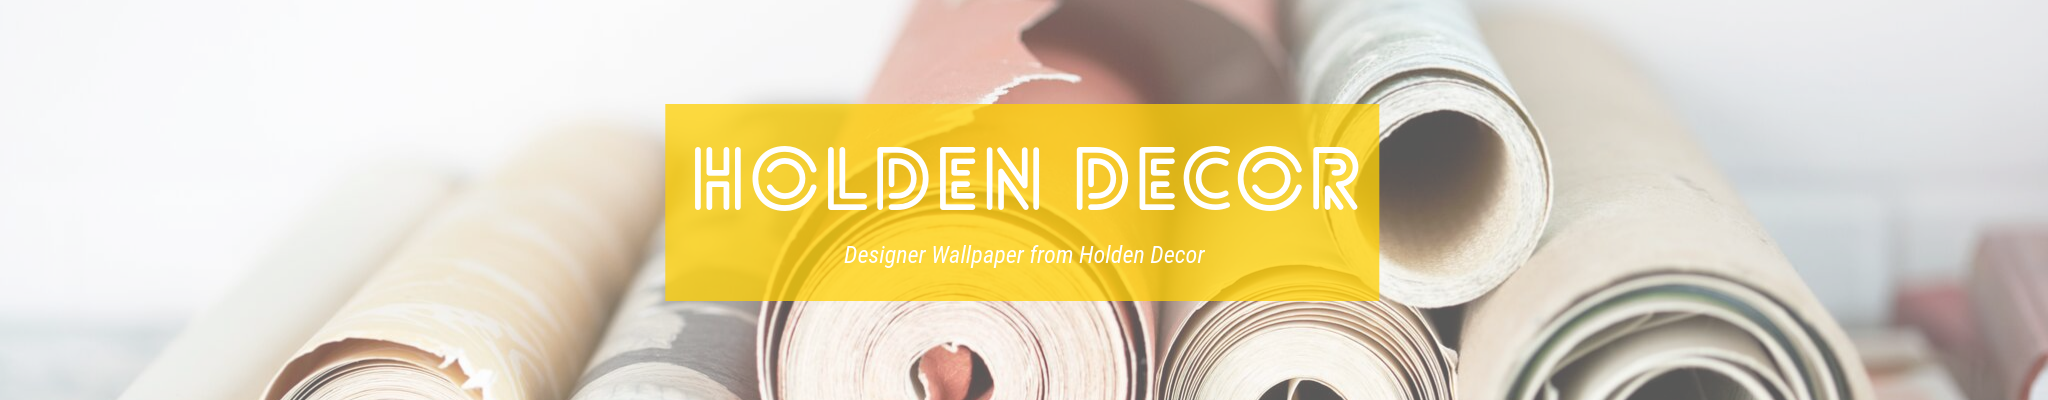 Holden Decor Wallpaper